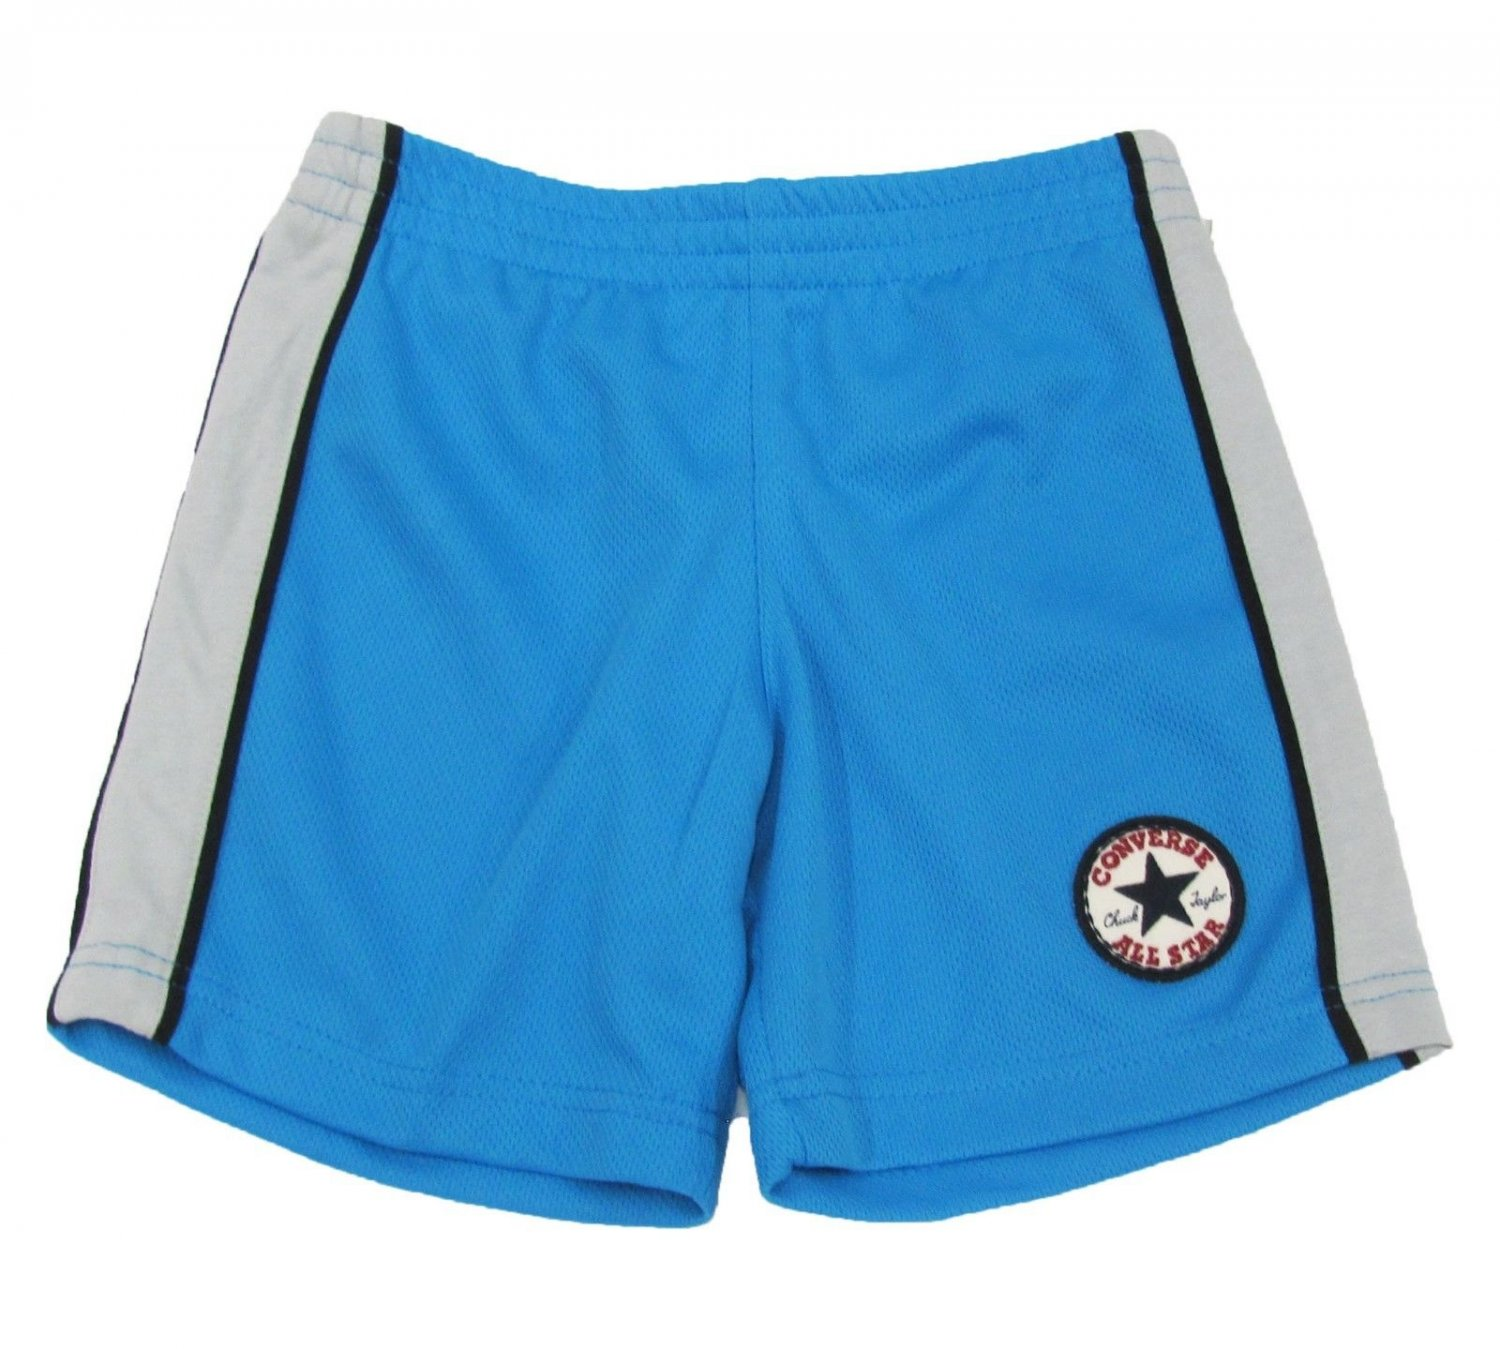 Converse Boys 4 Blue Gym Shorts with Gray Stripes Kids New